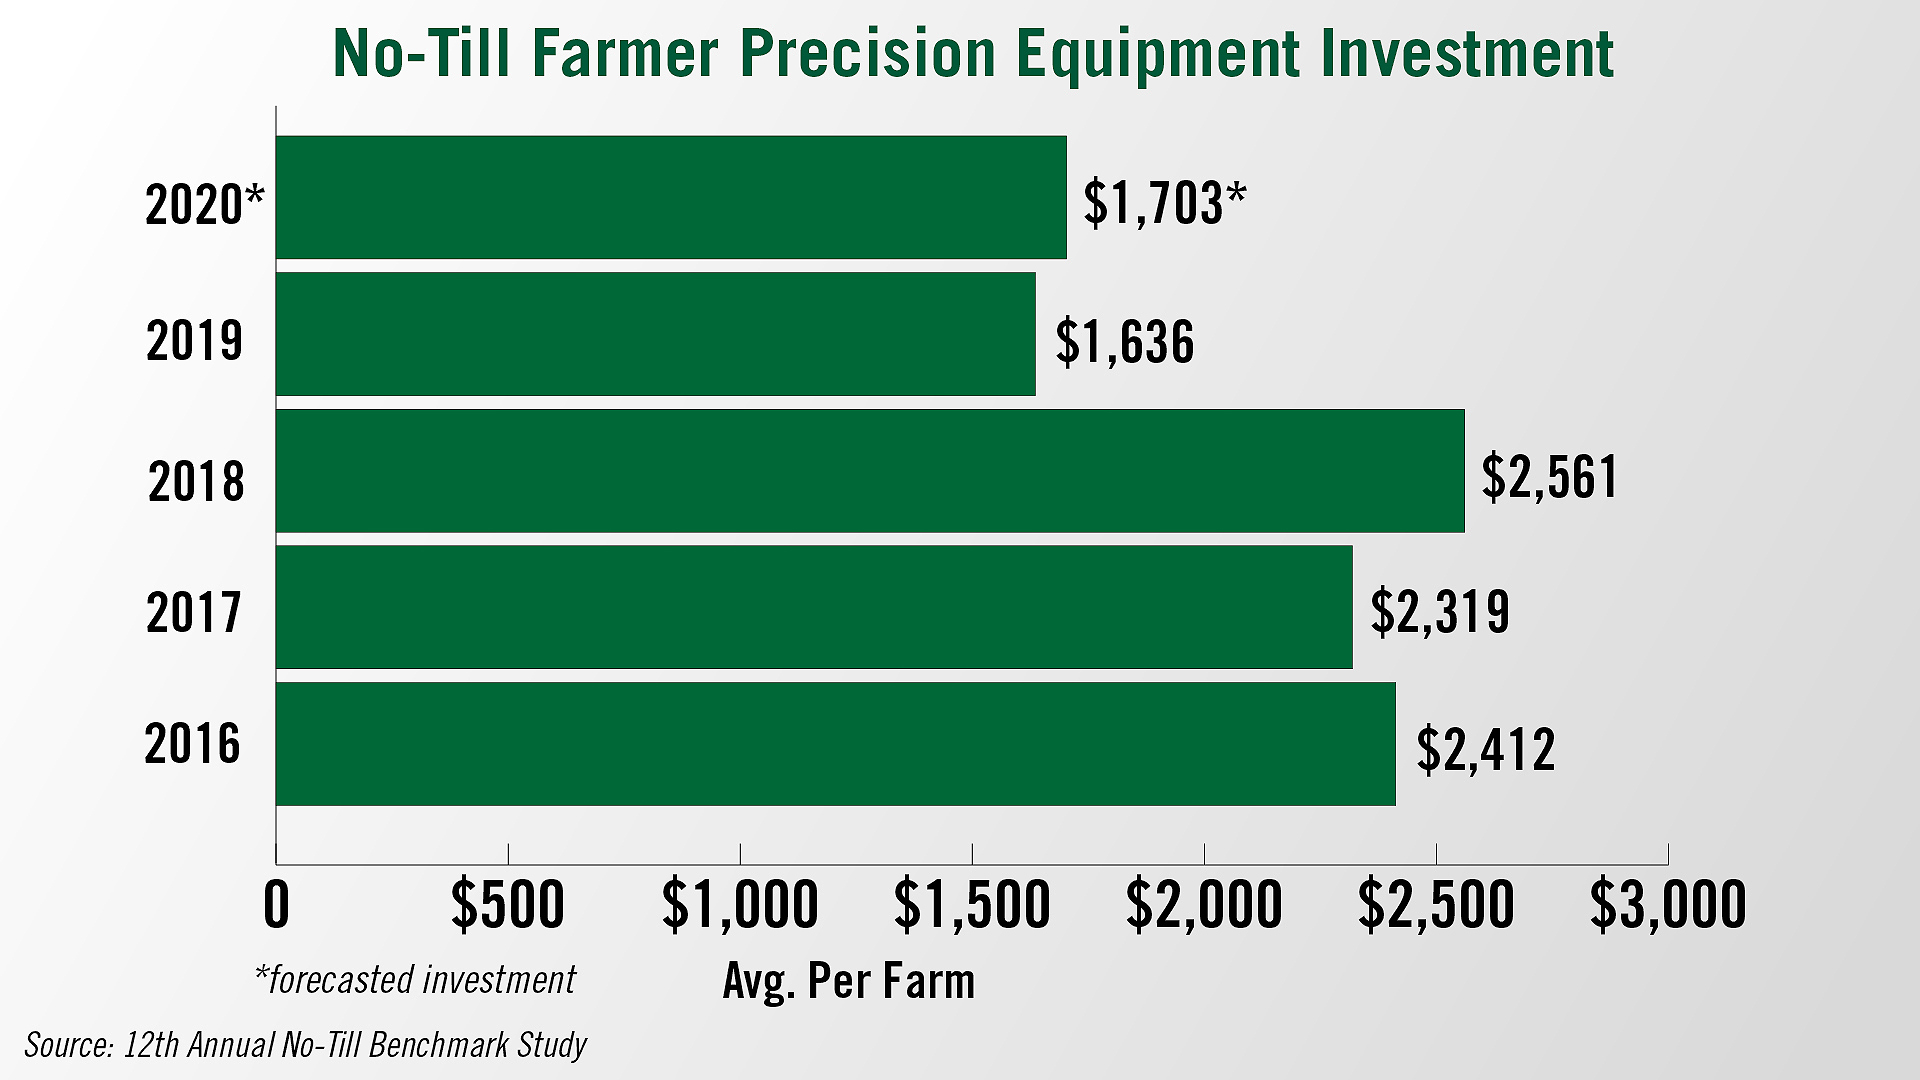 No-Till Farmer Precision Equipment Investment